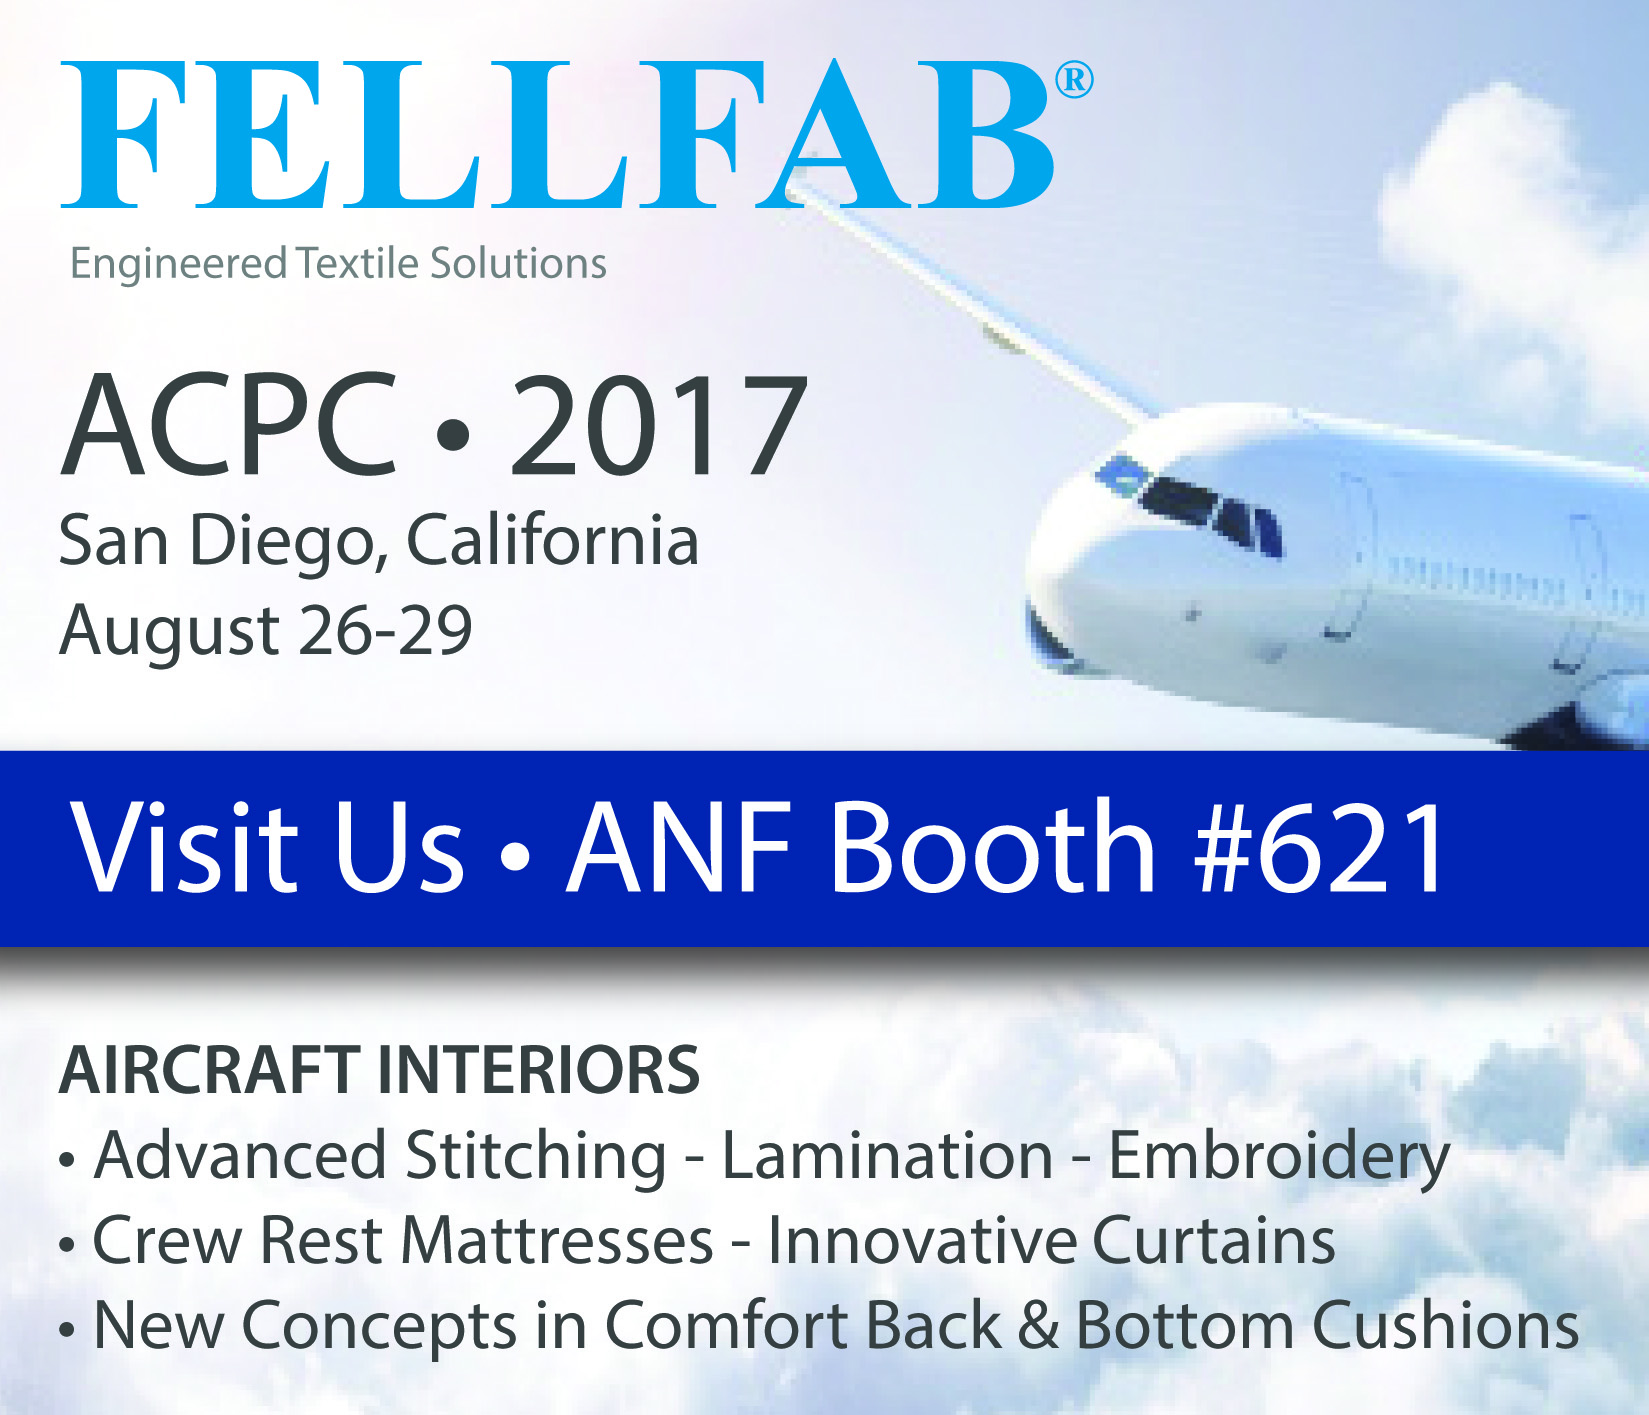 FELLFAB will be exhibiting at APTA 2017